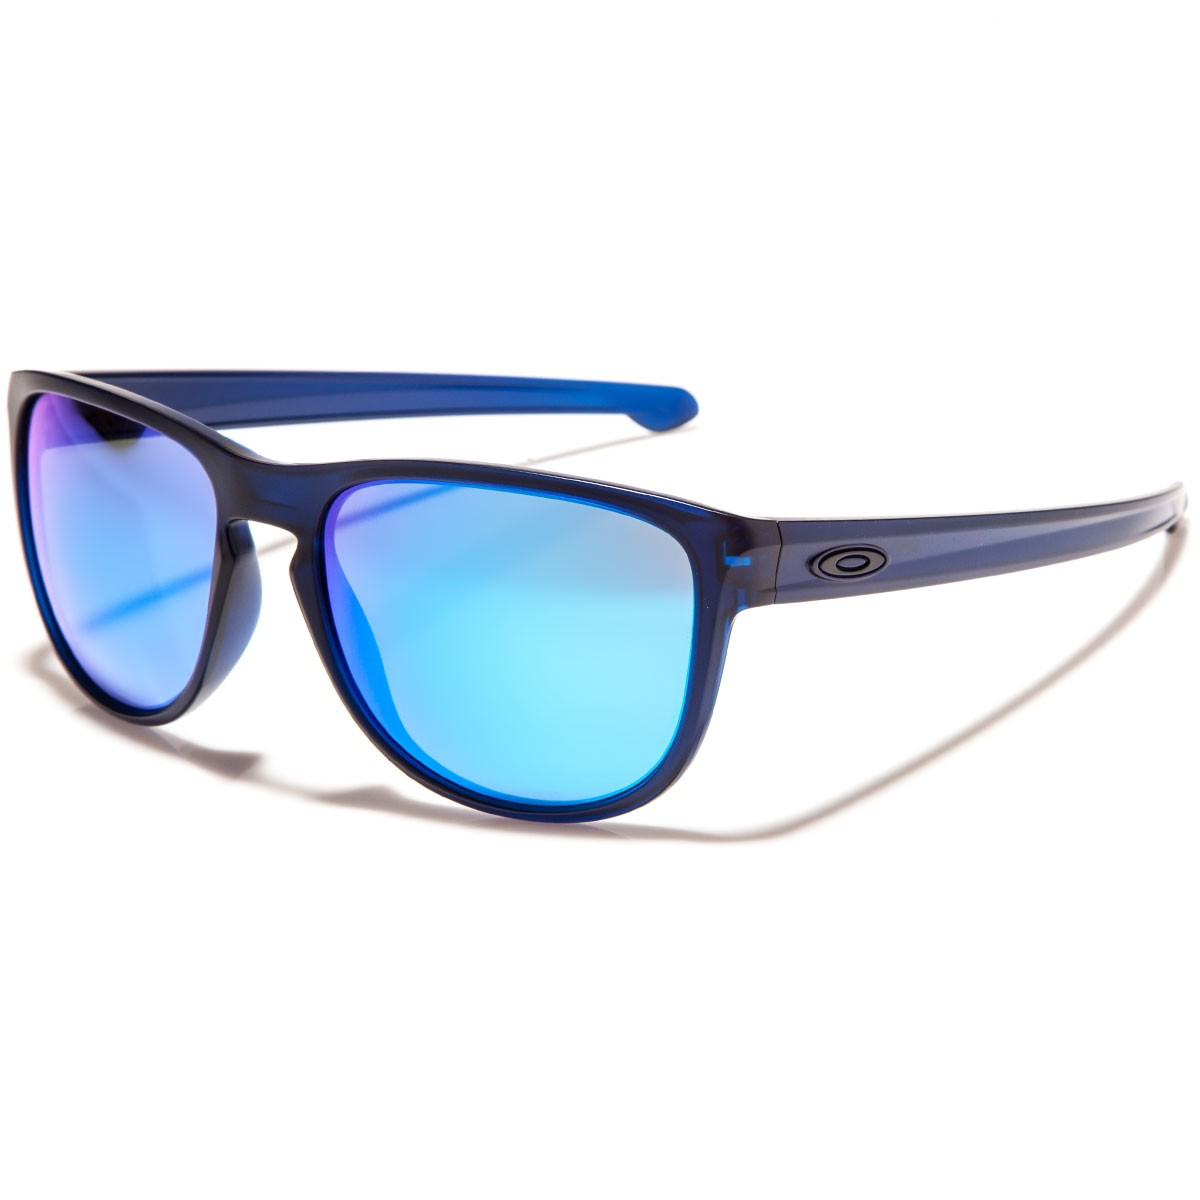 blue and silver oakley sunglasses  oakley sliver r sunglasses matte dark translucent blue/sapphire iridium